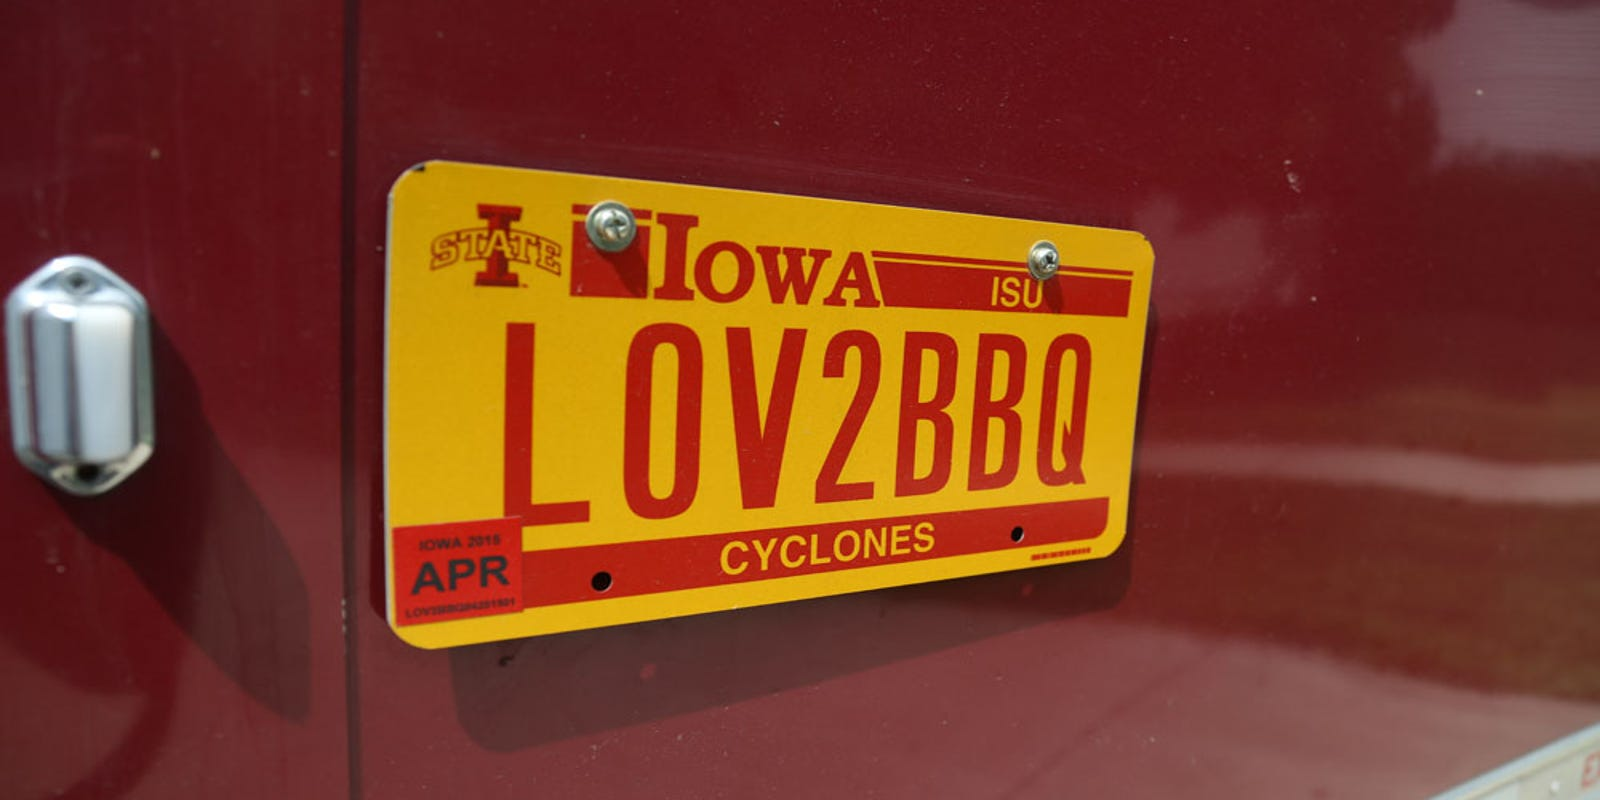 Quiz: Were these personalized license plate requests approved or rejected by the Iowa DOT?